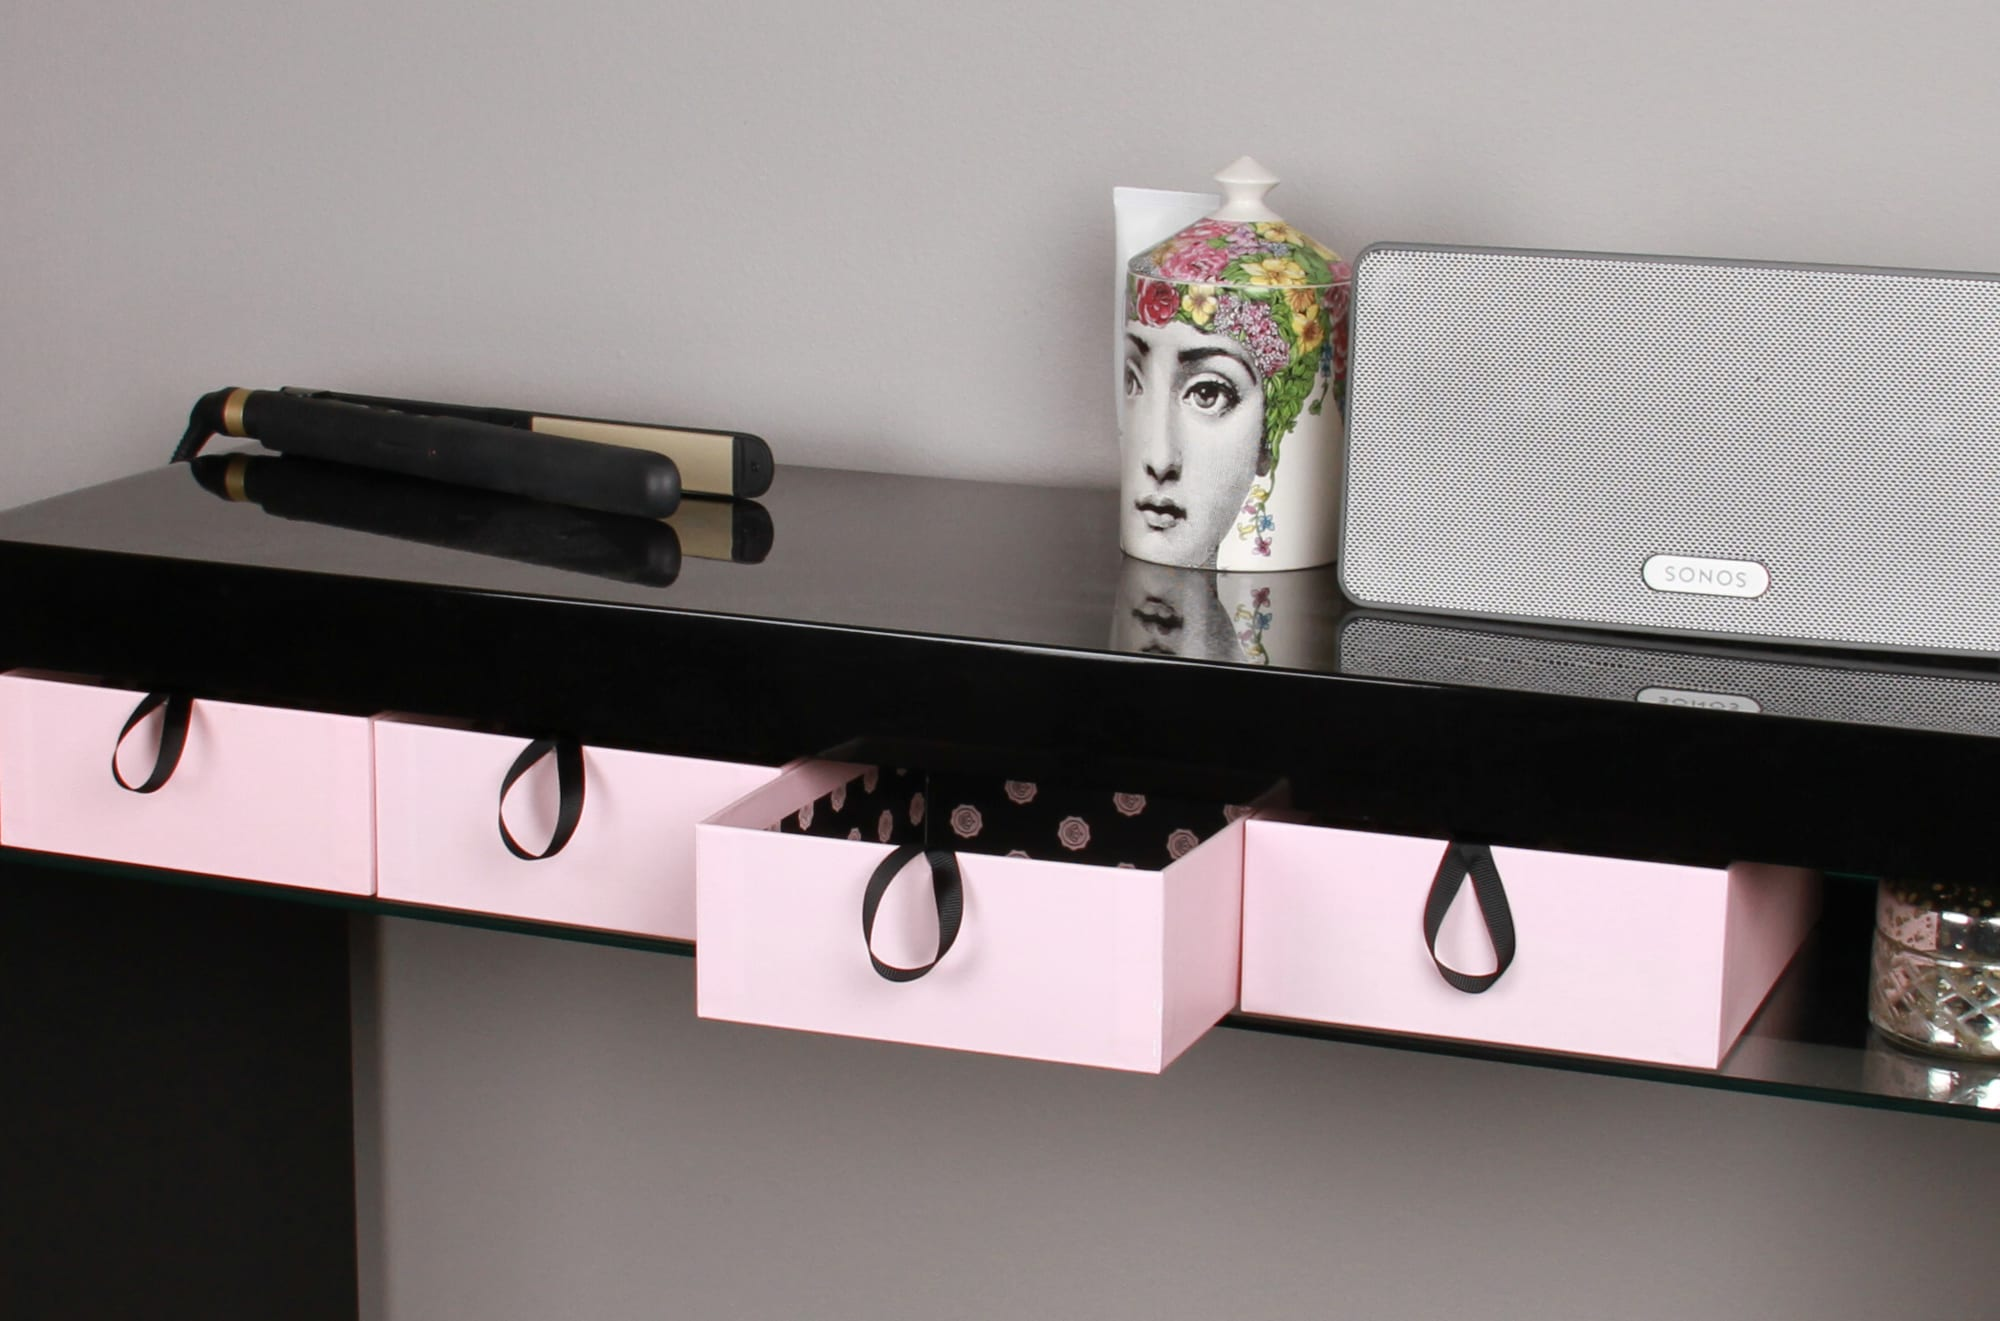 upscale_your_glossybox_drawers